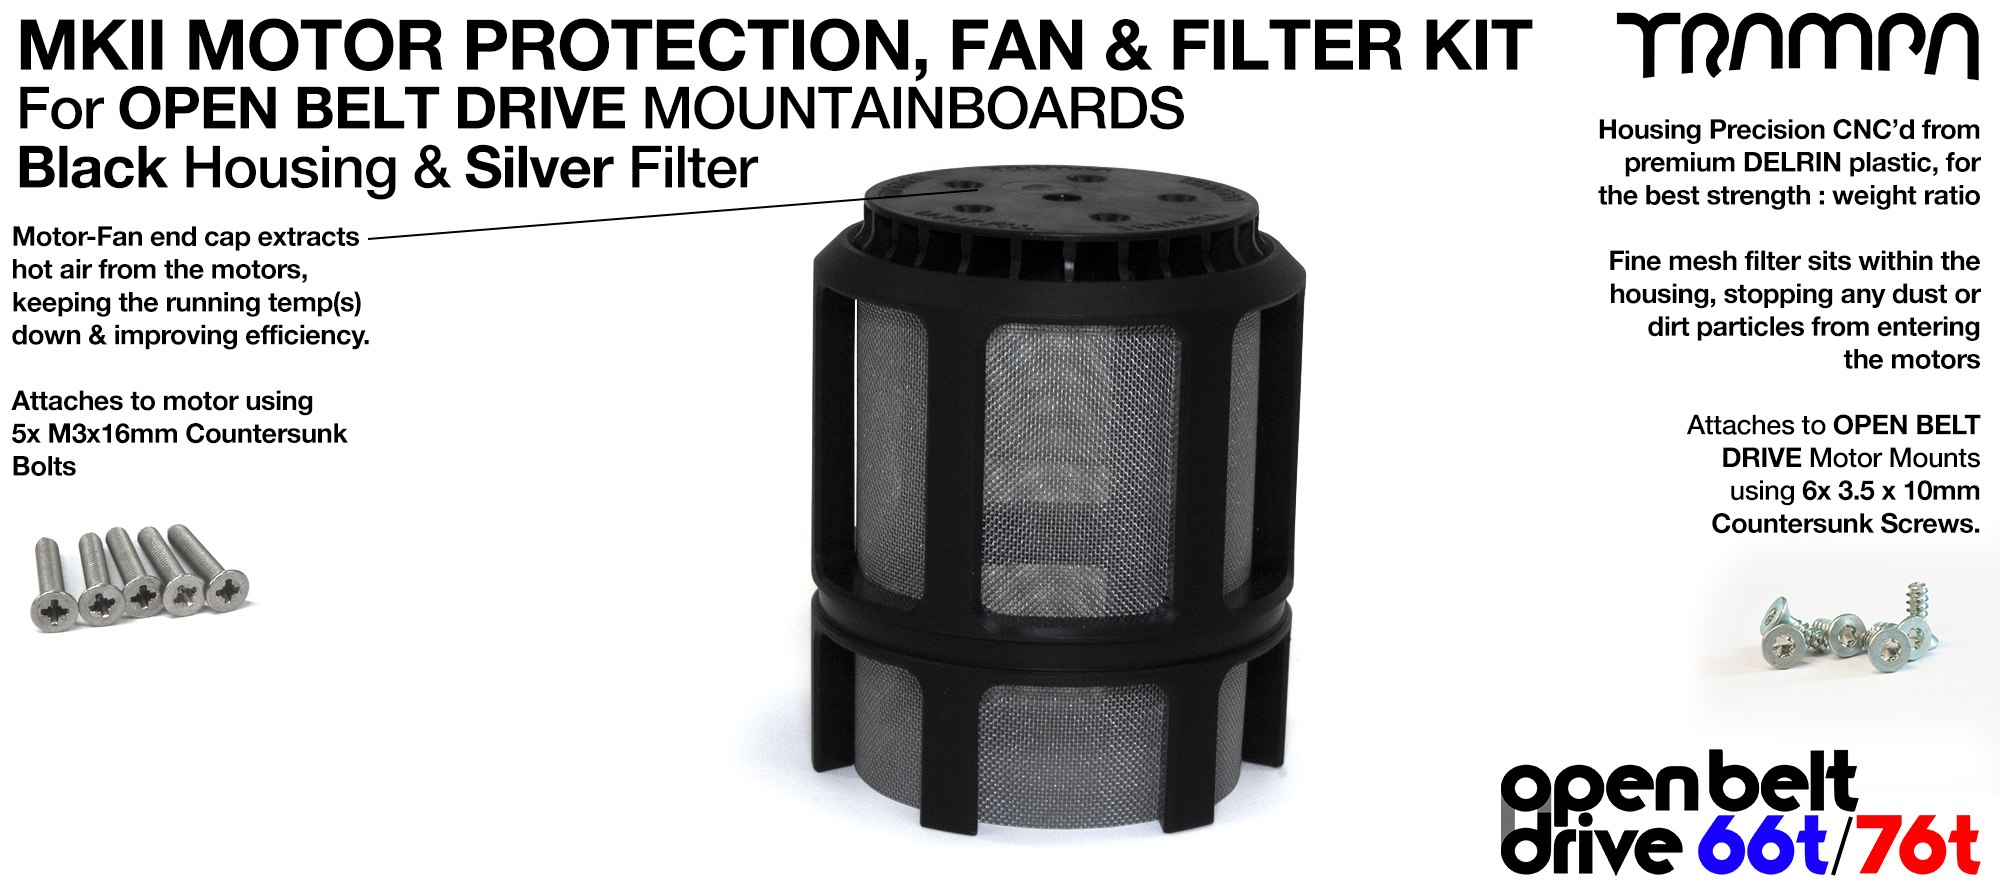 1x OBD MKII Motor protection Sleeve with SILVER Filter